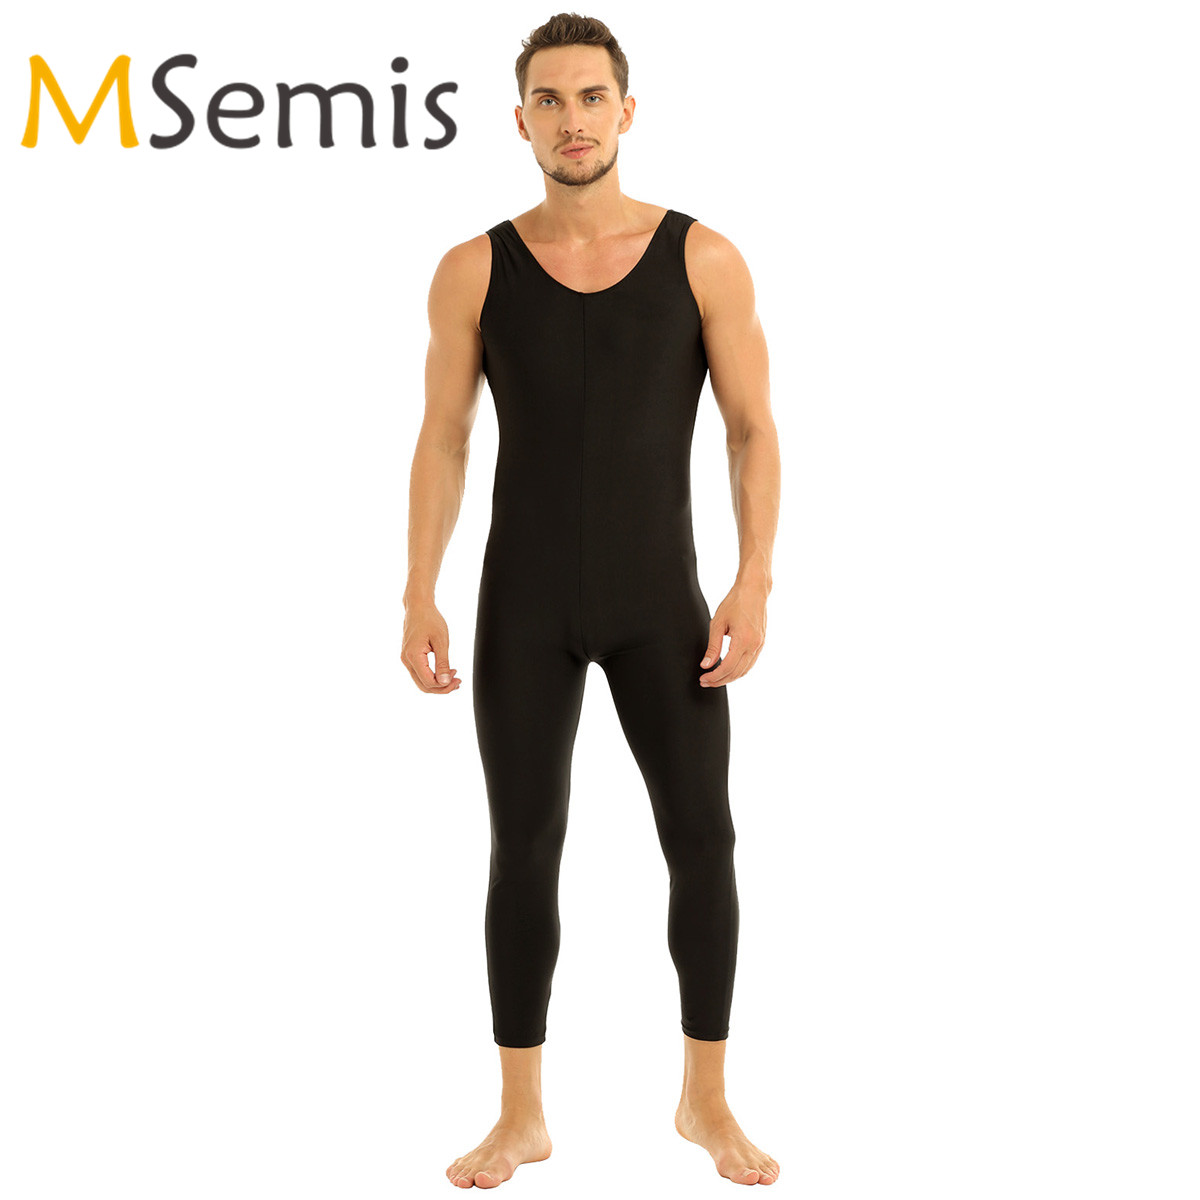 Mens Gymnastics Leotard Dancewear Adults Well Fit One Piece Scoop Neck Sleeveless Skin-Tight Solid Color Vest Unitard Bodysuit